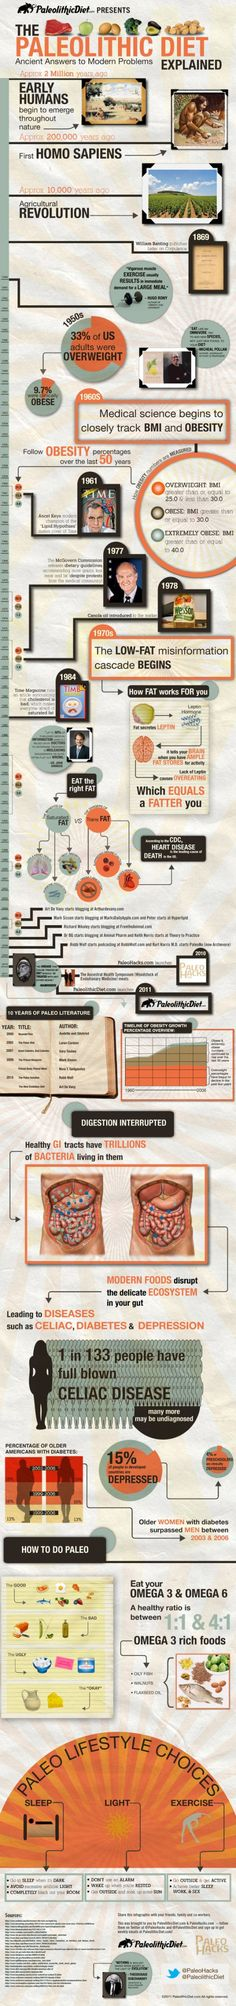 """Paleo Diet Infographic. Not to go obsessive/compulsive, but maybe it's time we looked at the funky """"modern"""" food we've been eating, and say, """"Maybe this isn't good to have every day!"""""""